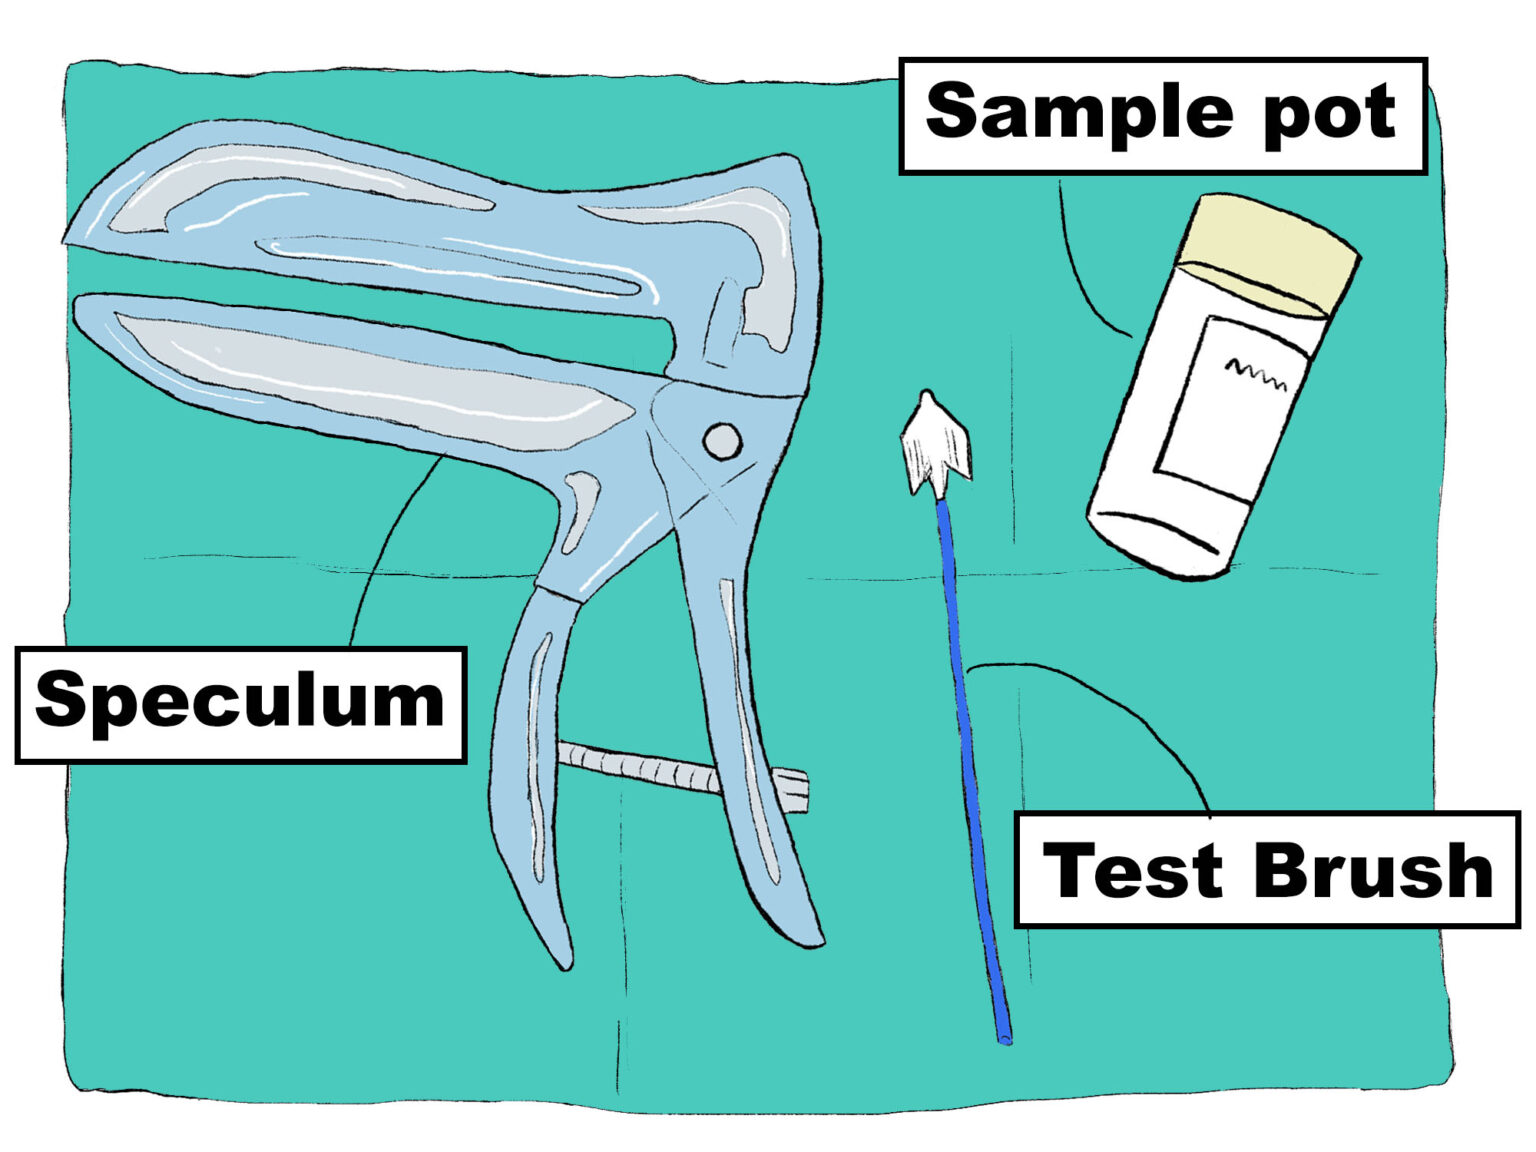 A digital drawing of material used to perform a SMEAR and a Sample test. The drawing shows the three different tools used to perform a SMEAR test which checks the health of the cervix, and a Sample test, to check on the general health of the internal genital organs. Three tools are depicted. The first tool is a speculum. The second tool is a test brush. A test brush has a long and thin handle with a small brush at the end. The third tool is a sample pot, which is a plastic cylinder where the sample from the test brush is securely stored for analysis. All of the three tools are sterile.